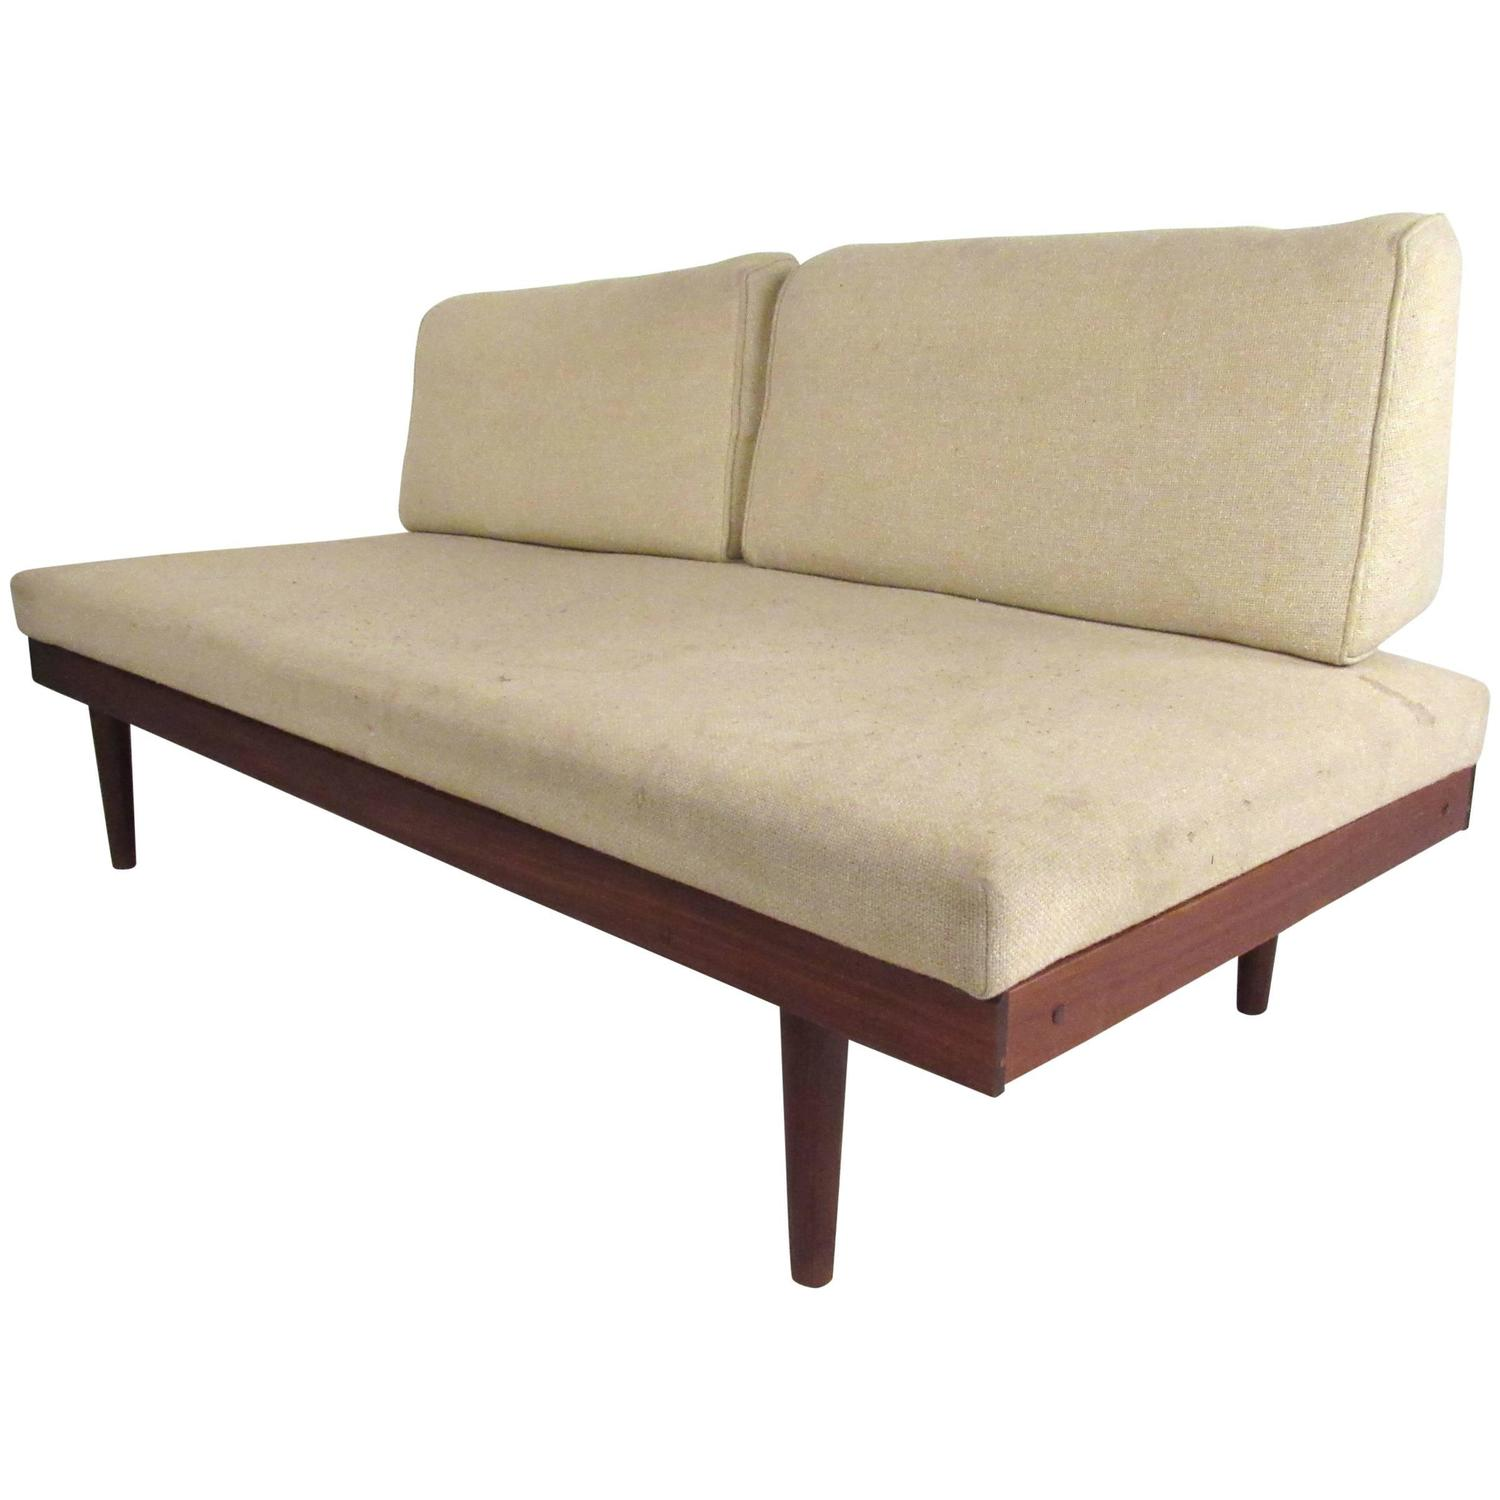 Mid century modern peter hvidt style daybed at 1stdibs for Mid century modern day bed